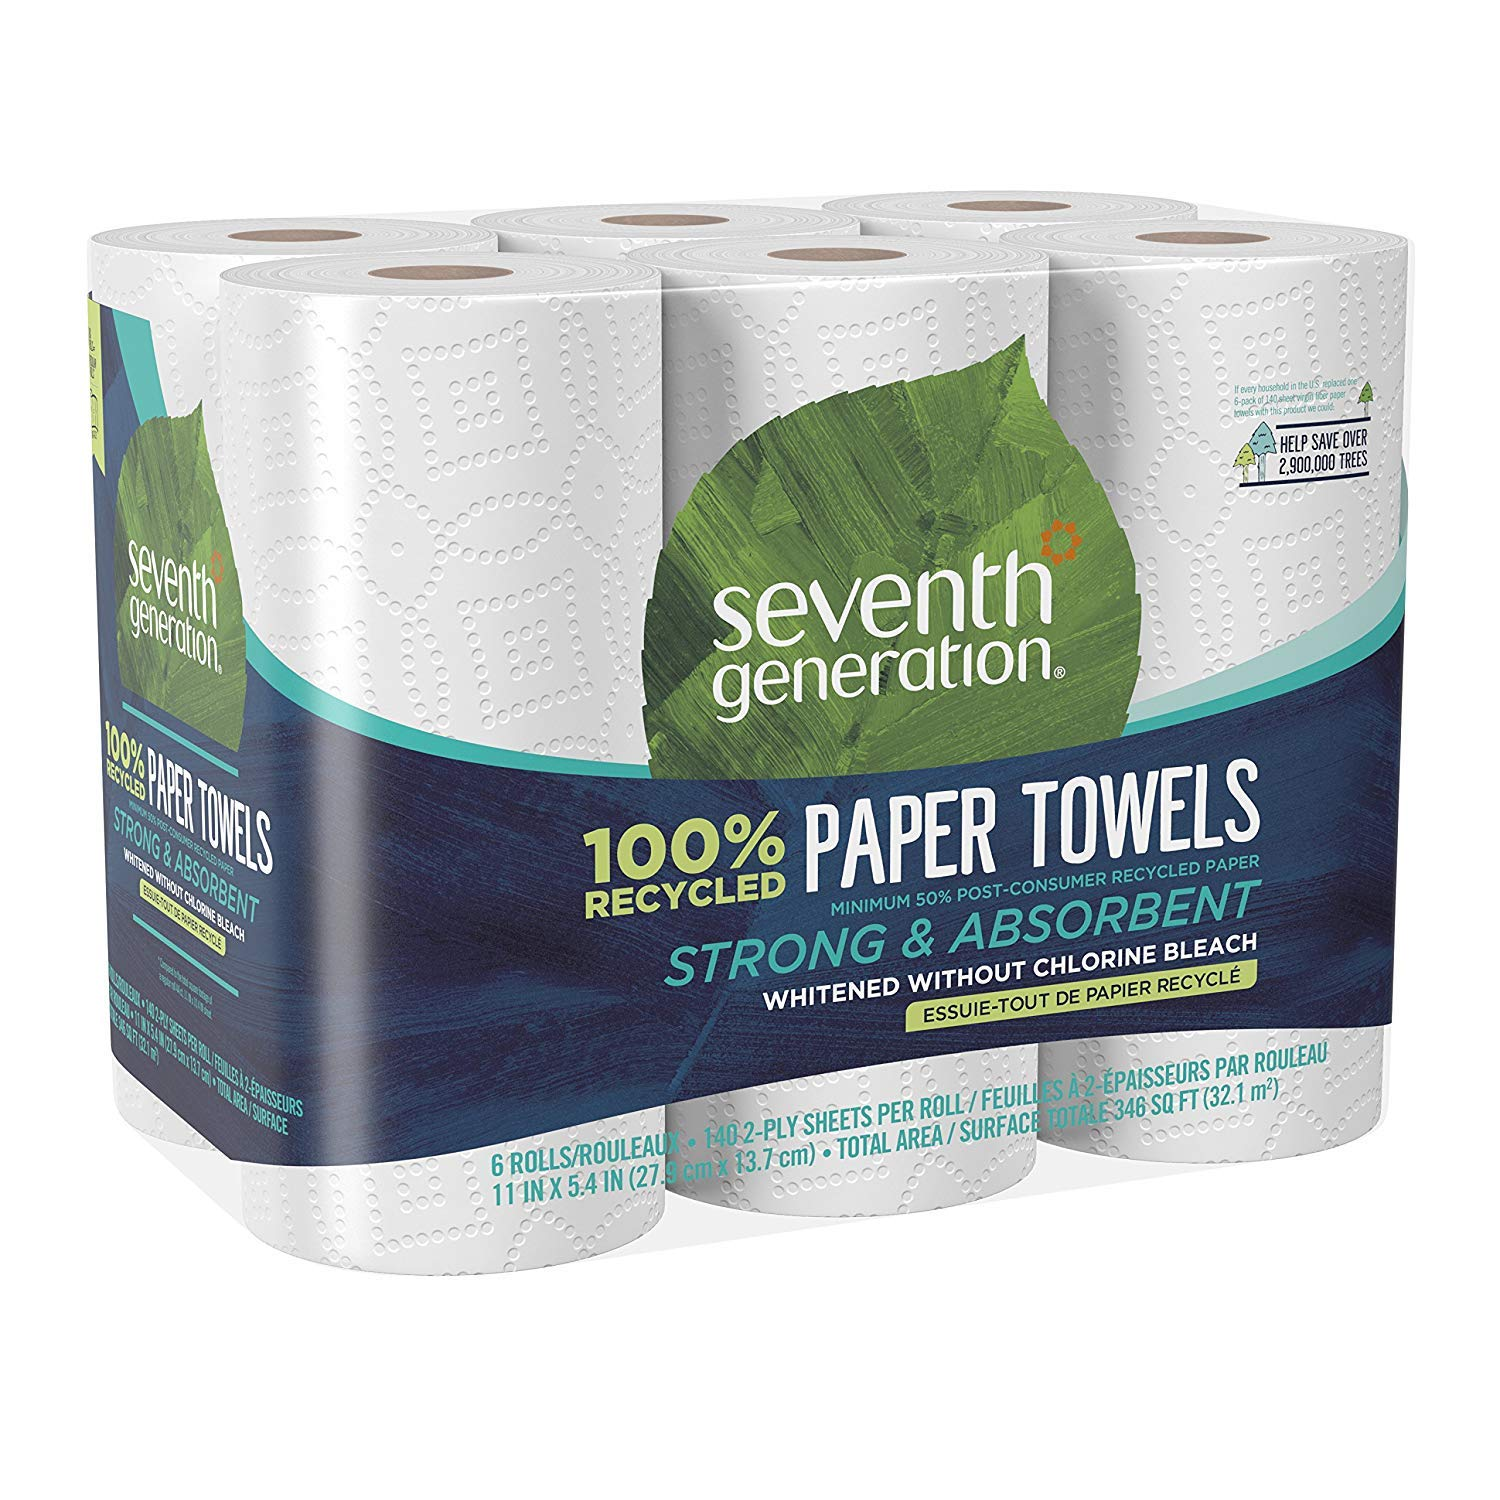 Seventh Generation Paper Towels, 100% Recycled Paper, 2-ply, (21 Rolls) (21 count)